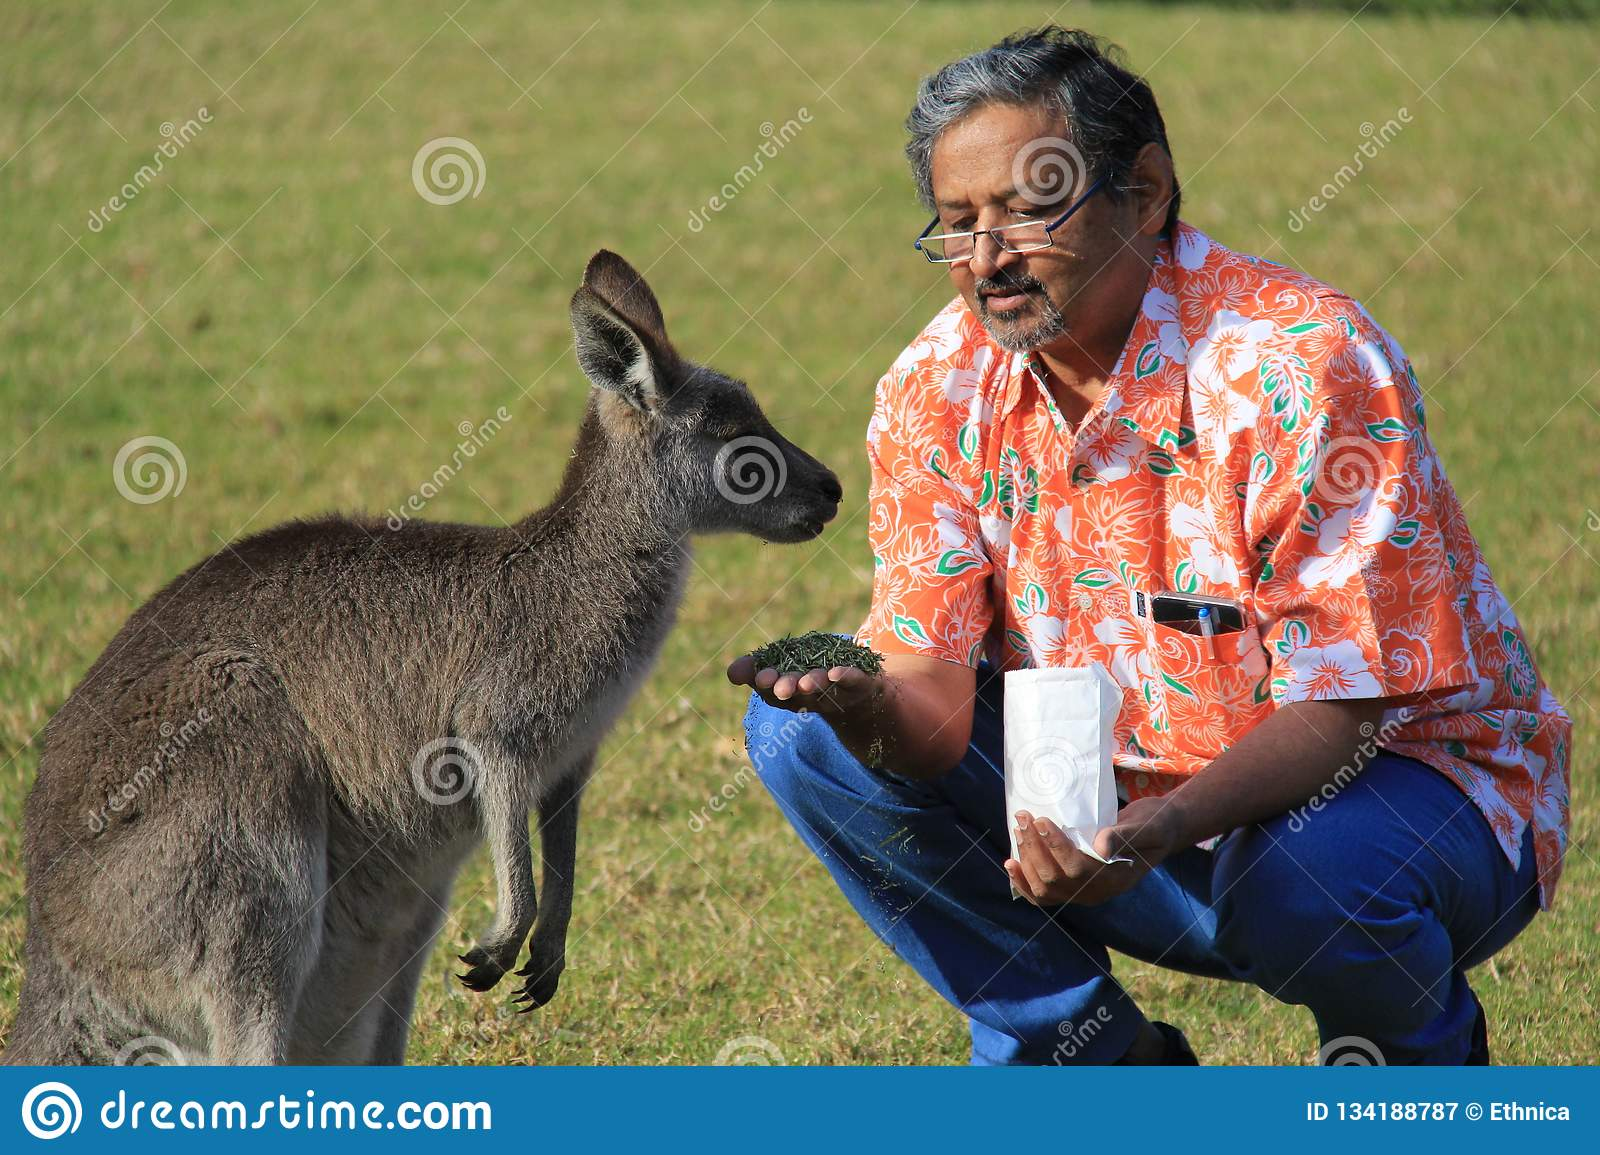 Mankind And Animal Kingdom Relationship Stock Image